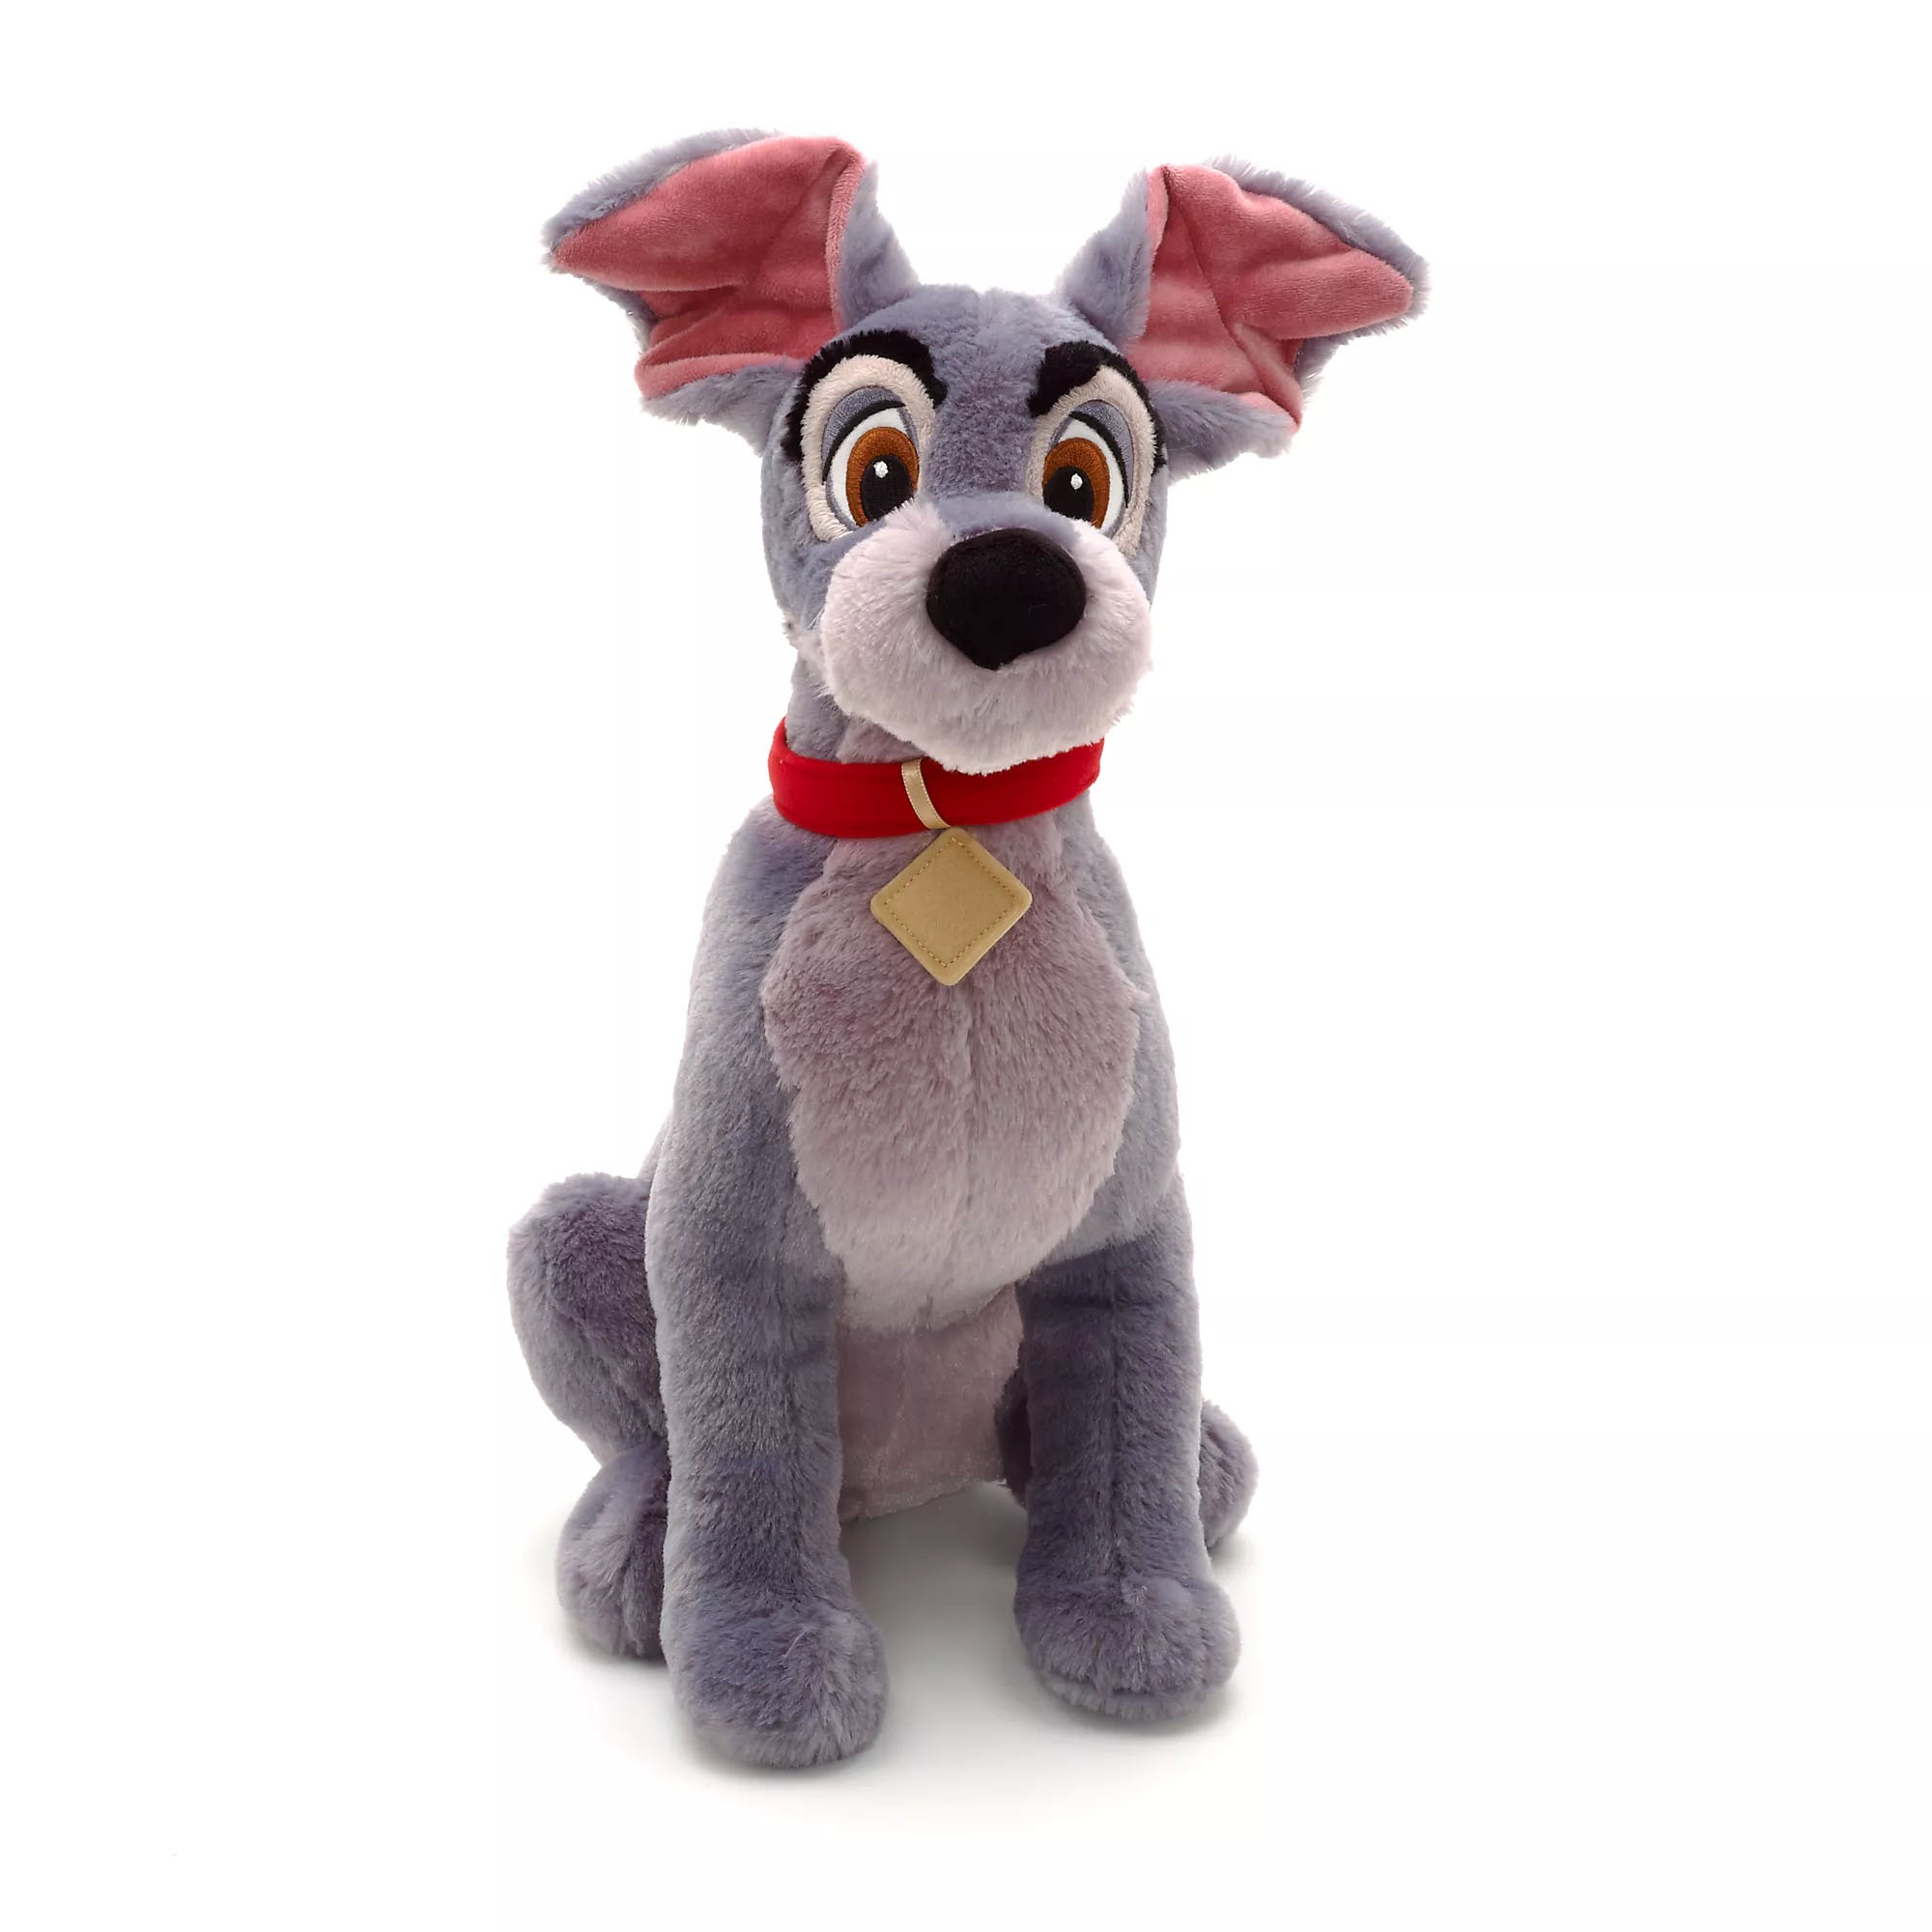 Disney Lady and the Tramp - Tramp Plush Toy Authentic Disney